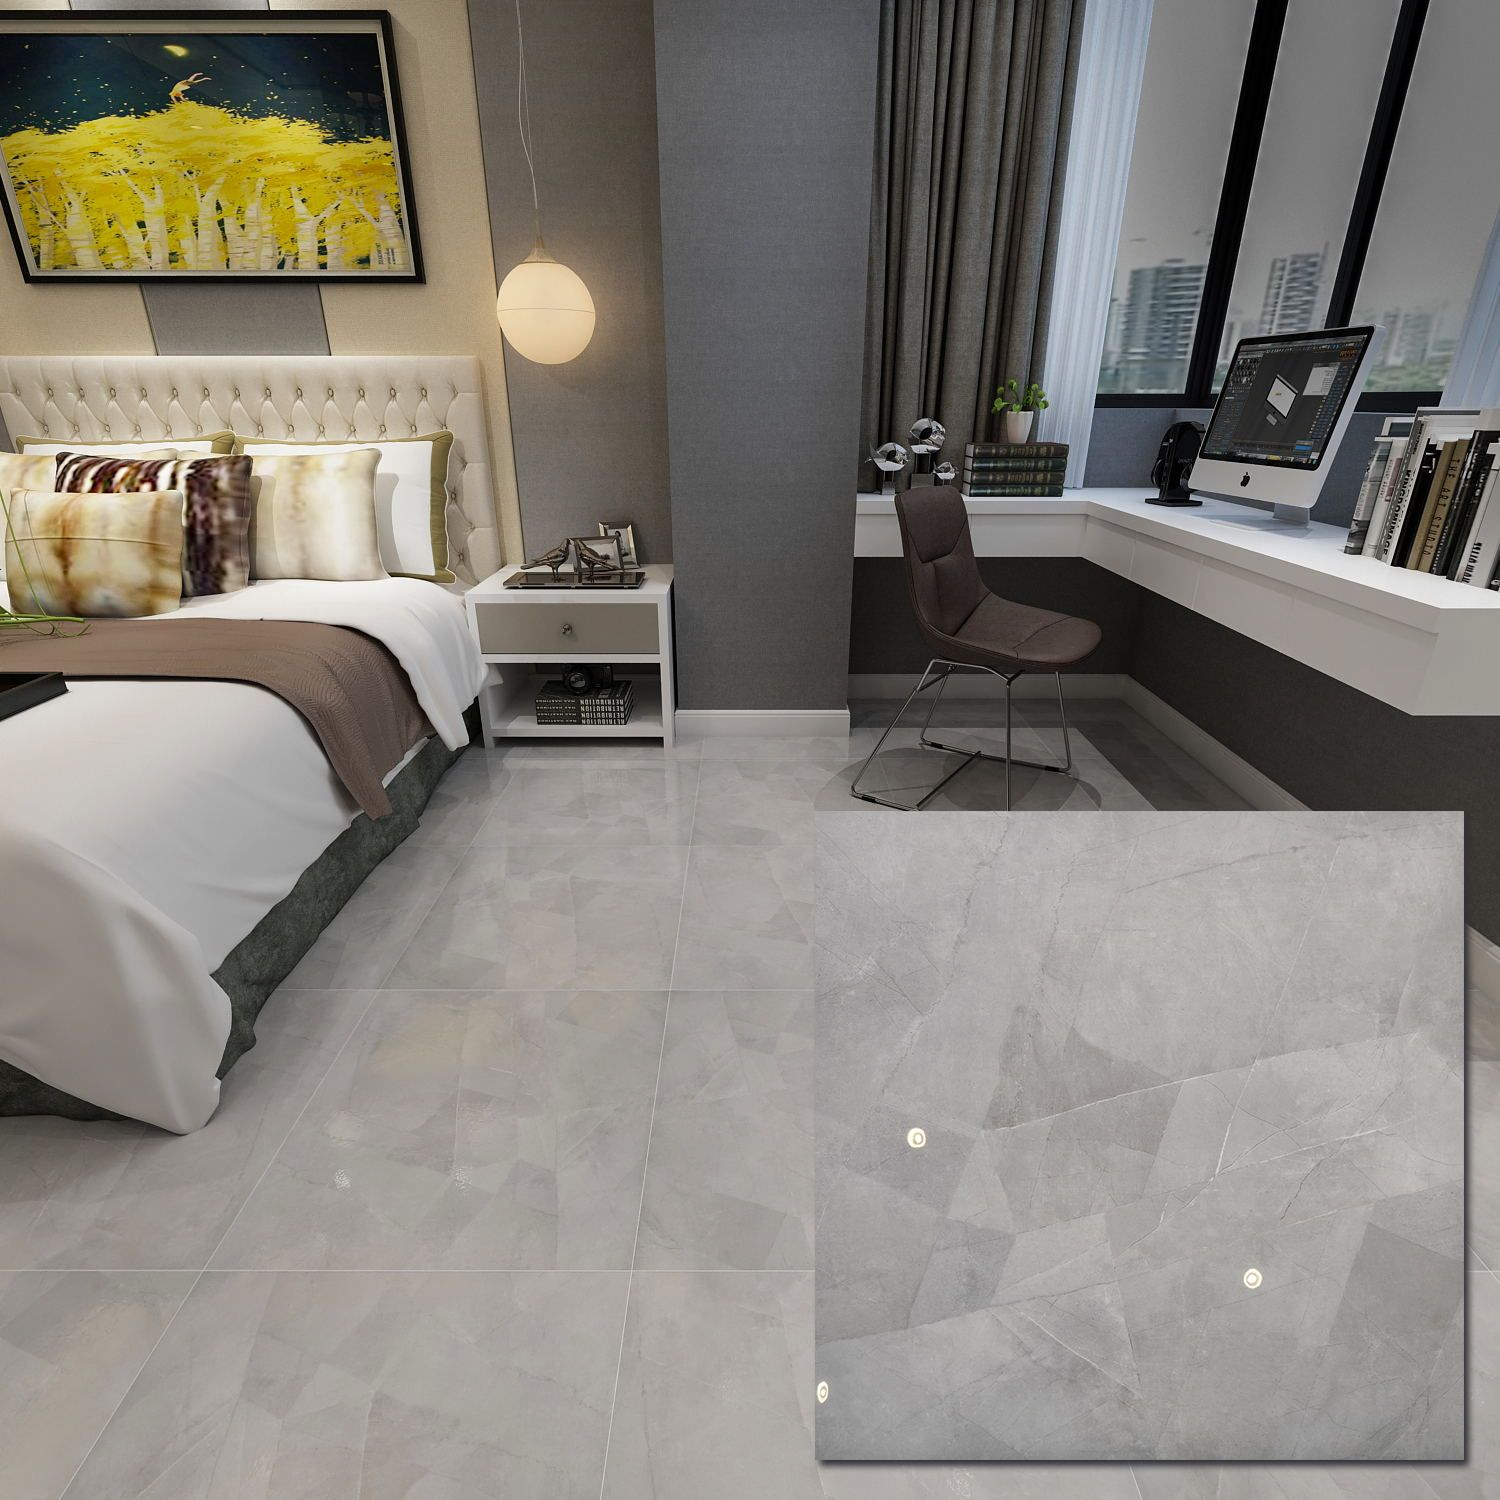 Grey 600 X 600mm Polished Ceramic Floor Tile In 2020 Ceramic Floor Tile Grey Ceramic Tile Ceramic Floor Tiles